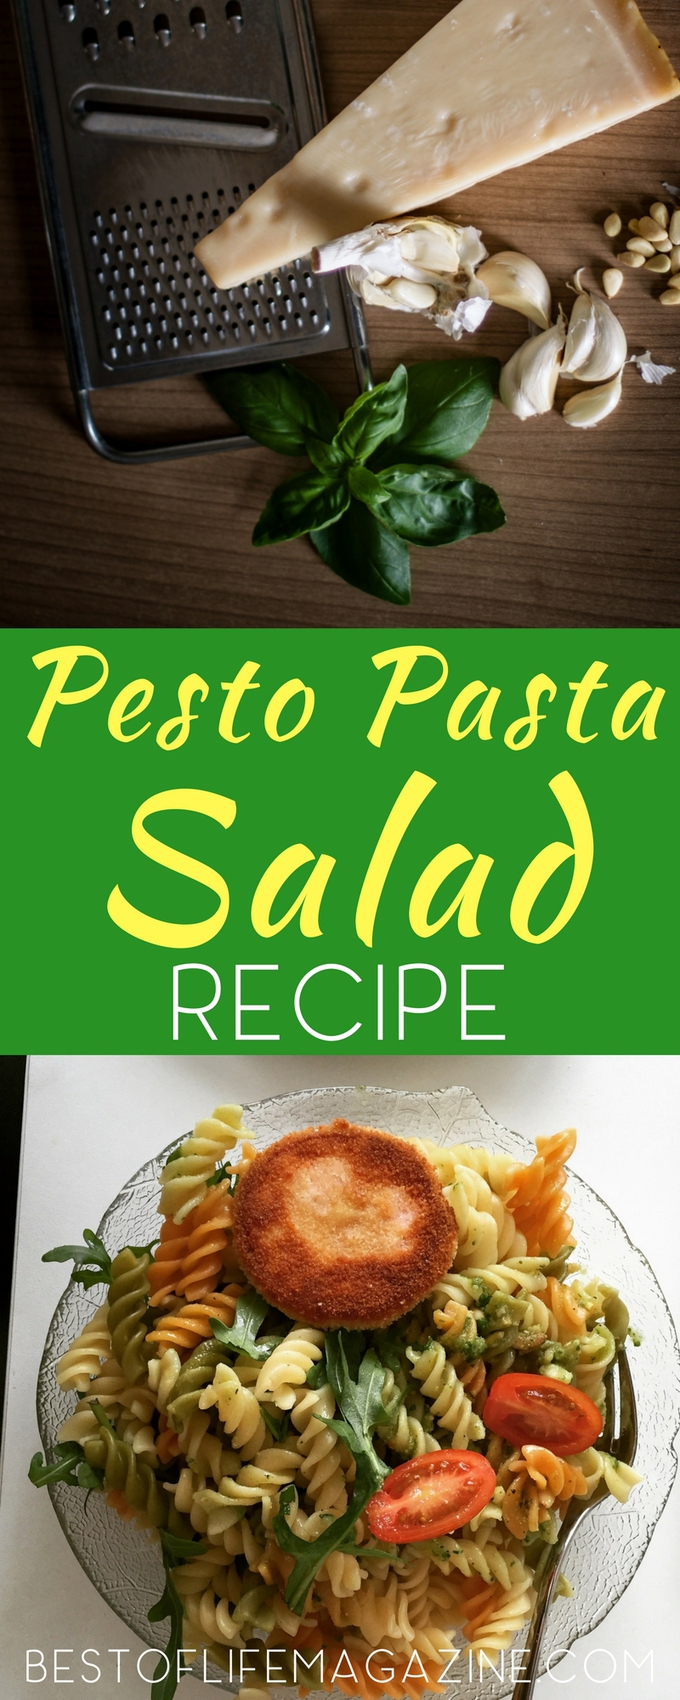 When it comes to entertaining, having the best recipes is important and a good place to start is with an easy basil pesto pasta that can serve everyone. Recipes for Parties | Family Recipes| Pesto Recipes | Best Pasta Recipes | Easy Pasta Recipes #recipes #salad